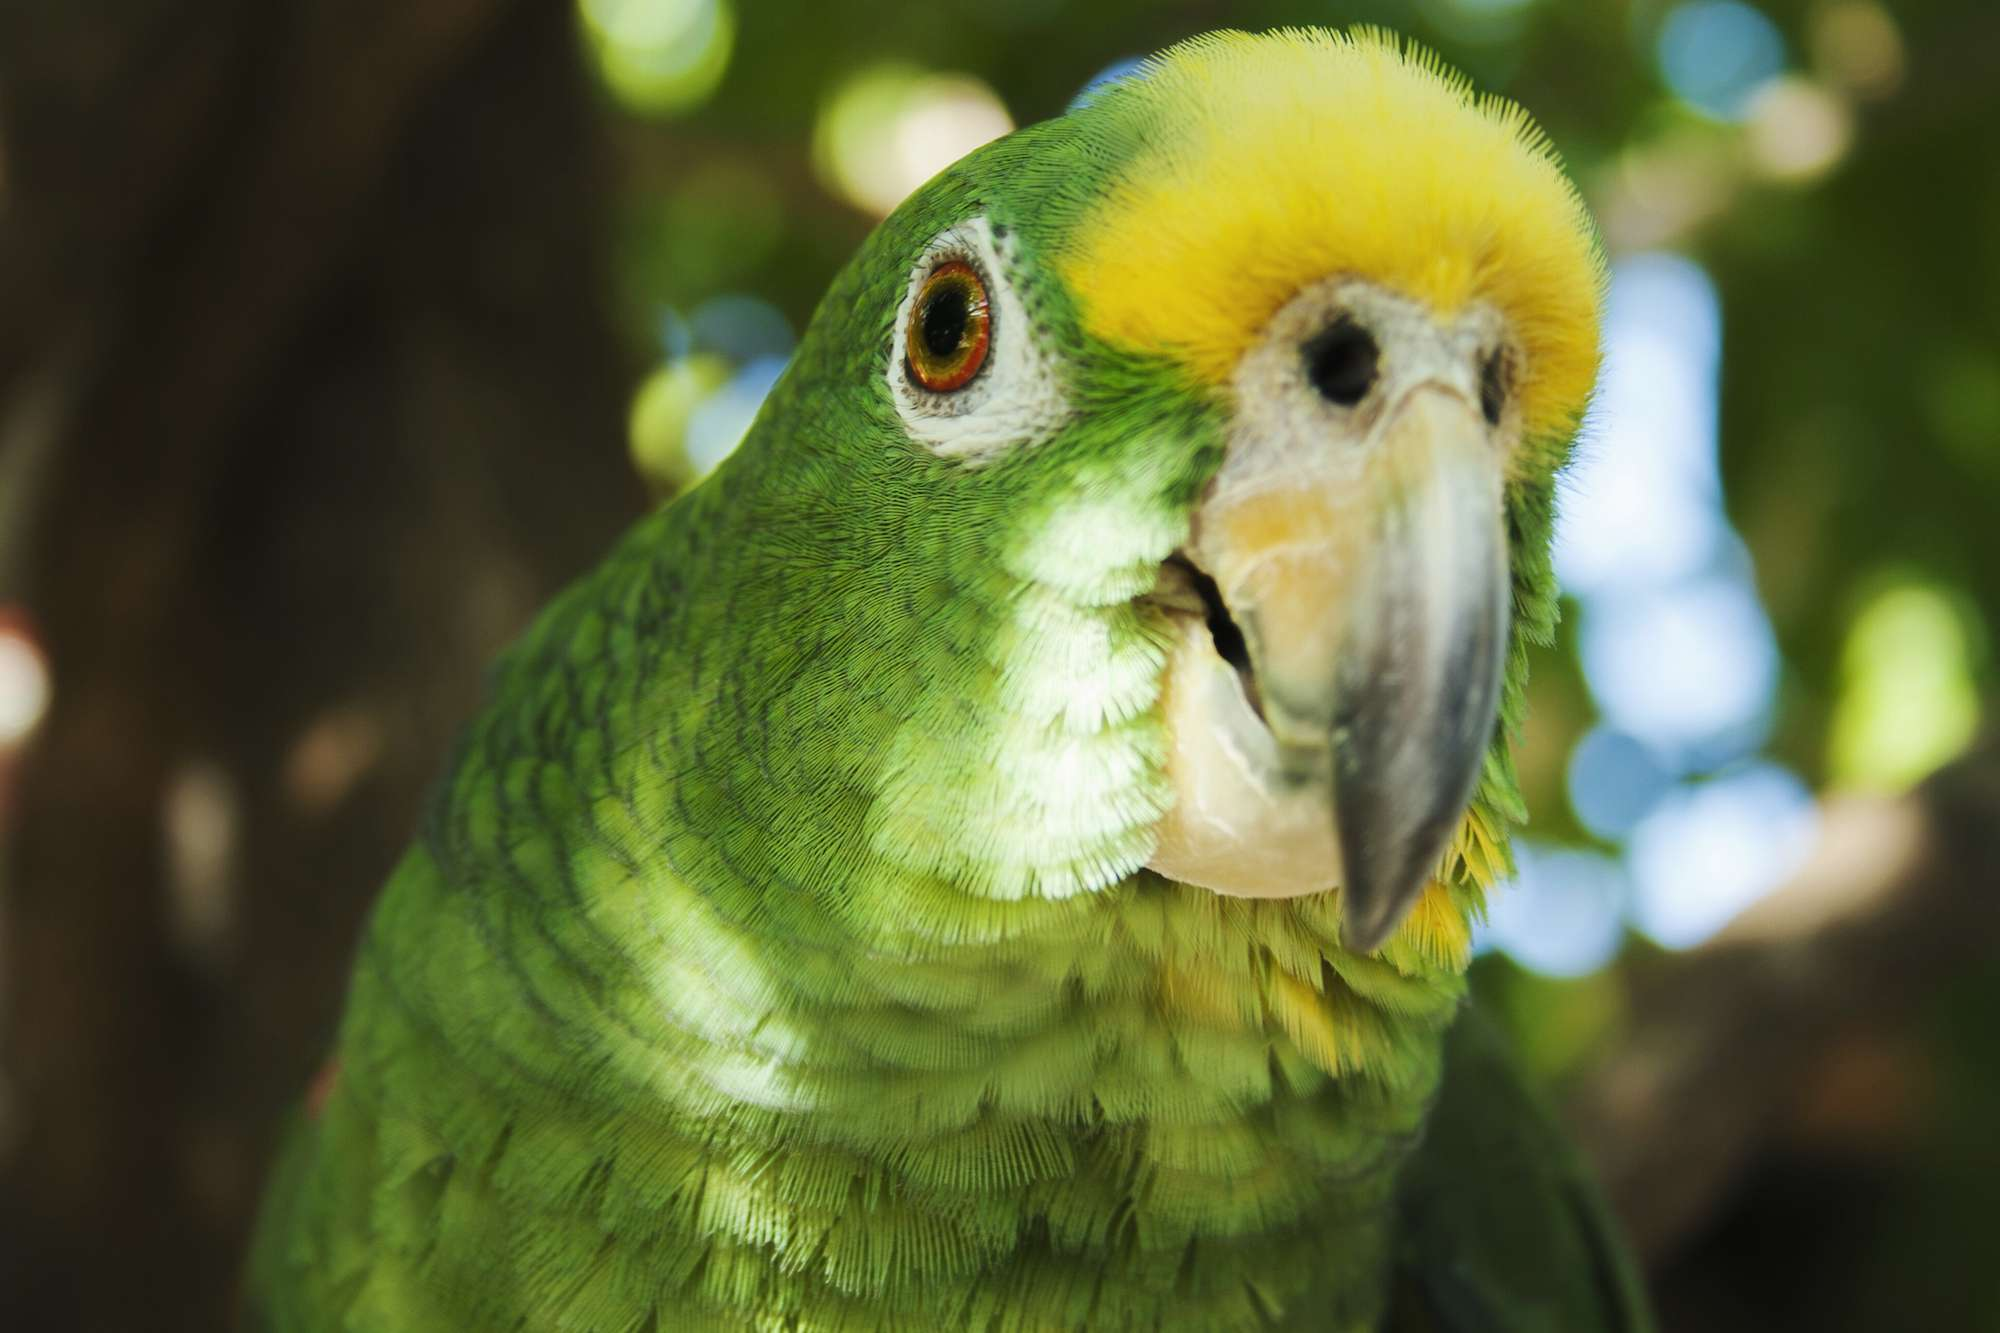 Markings on the face of the Panama Amazon Parrot